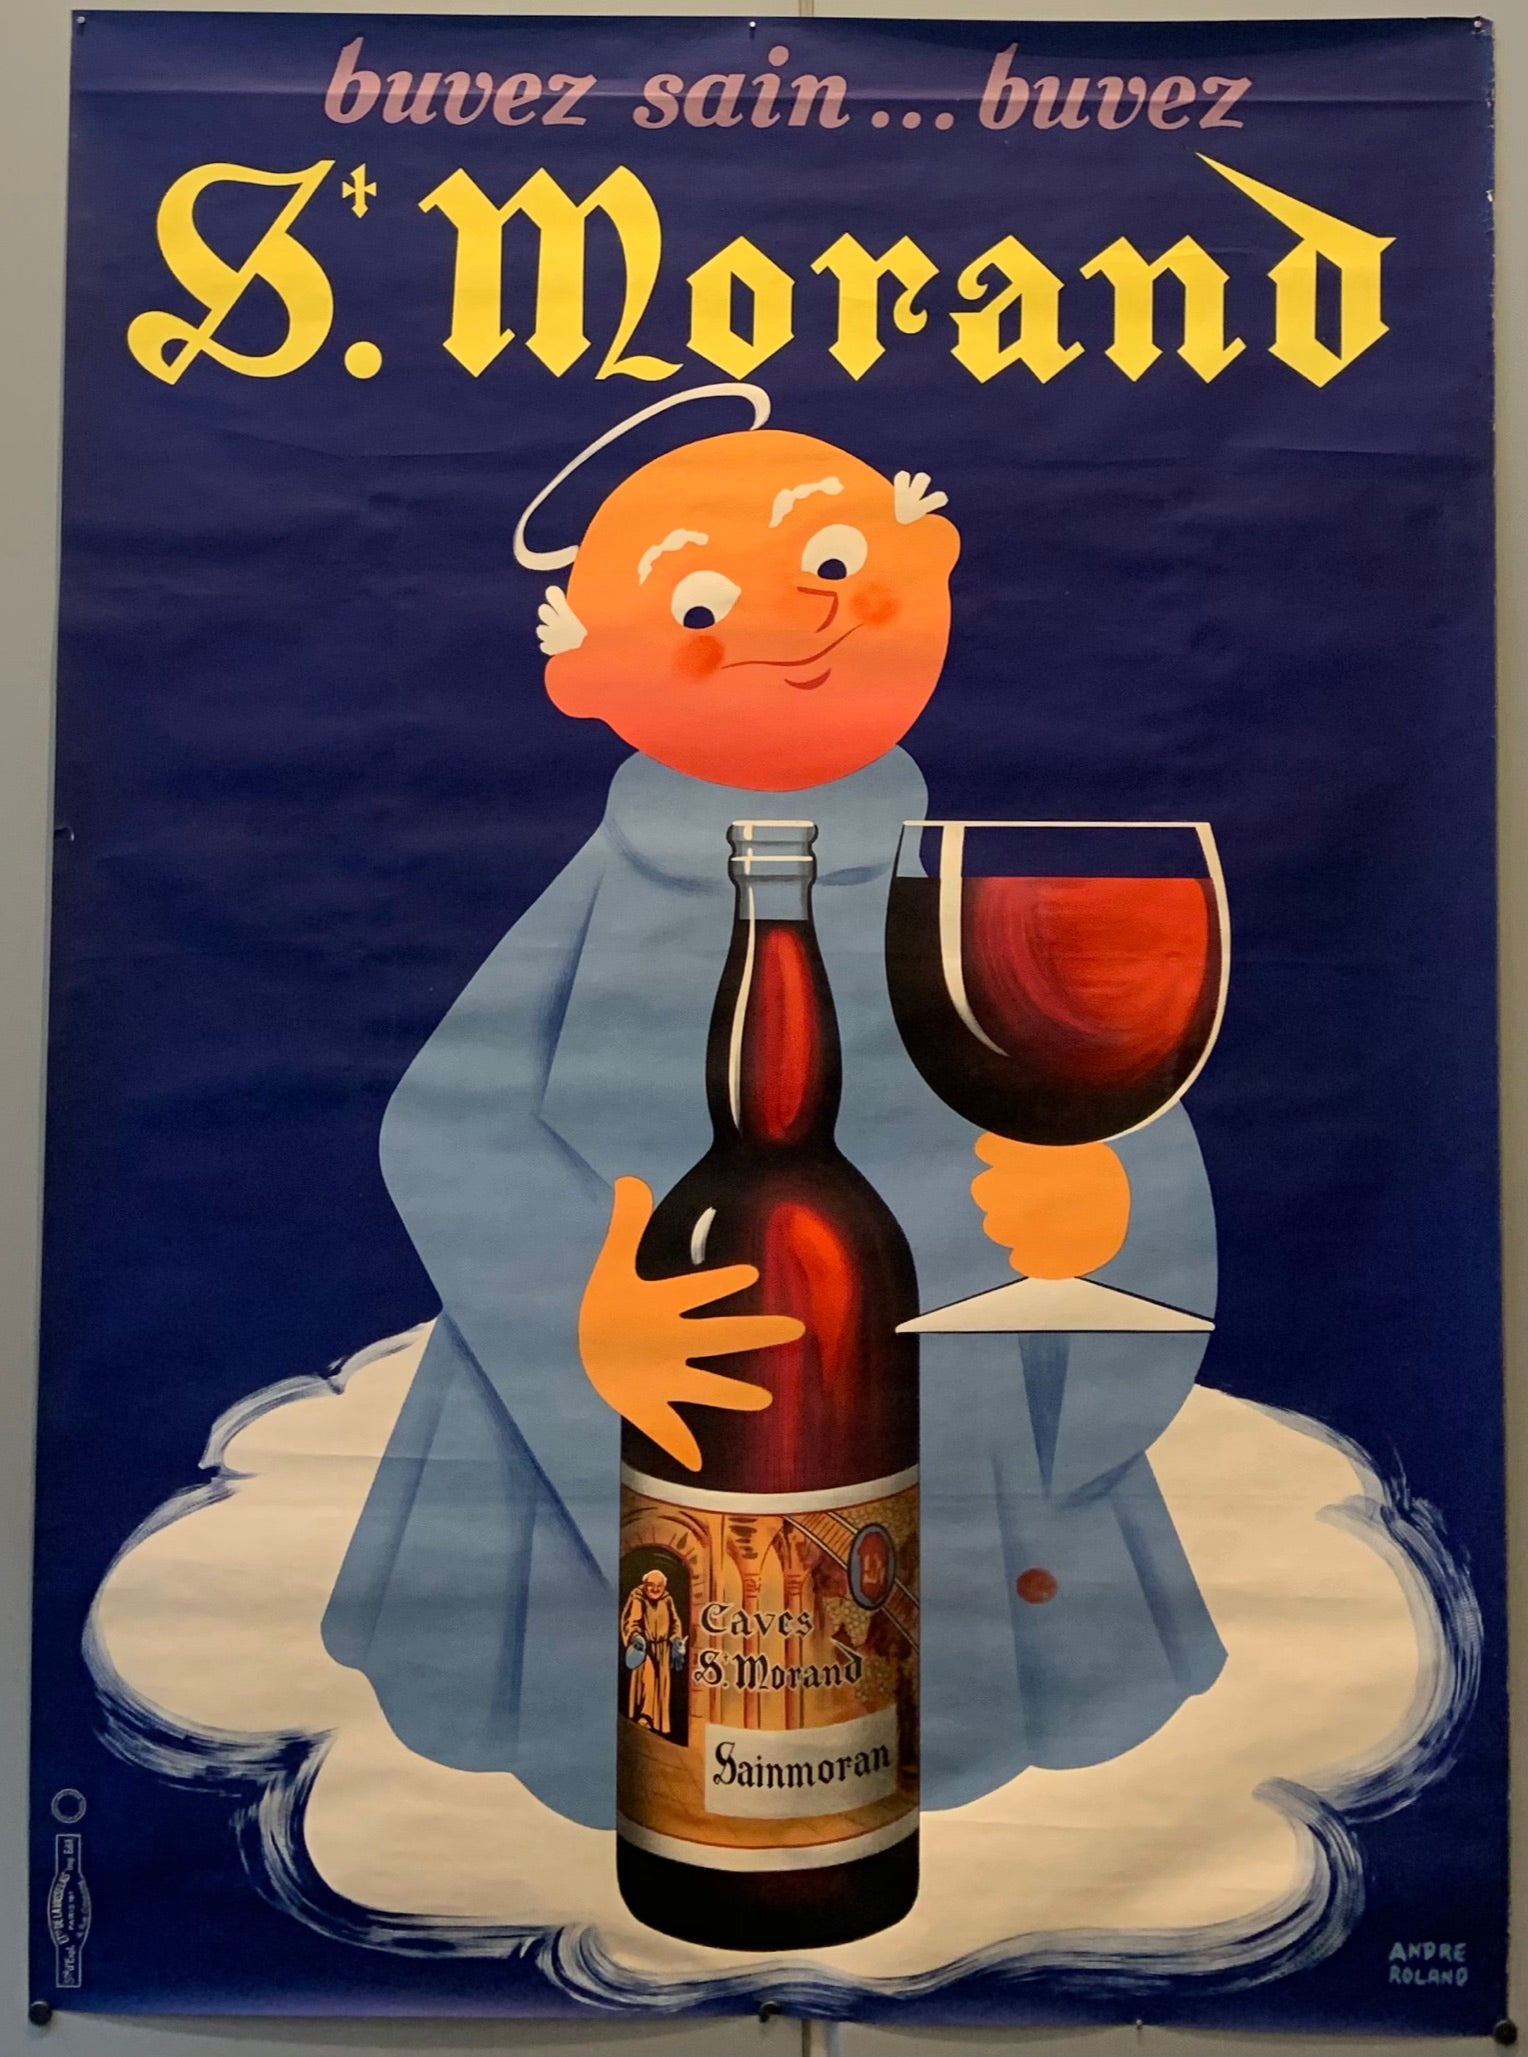 A poster of a saint with a halo drinking red wine.